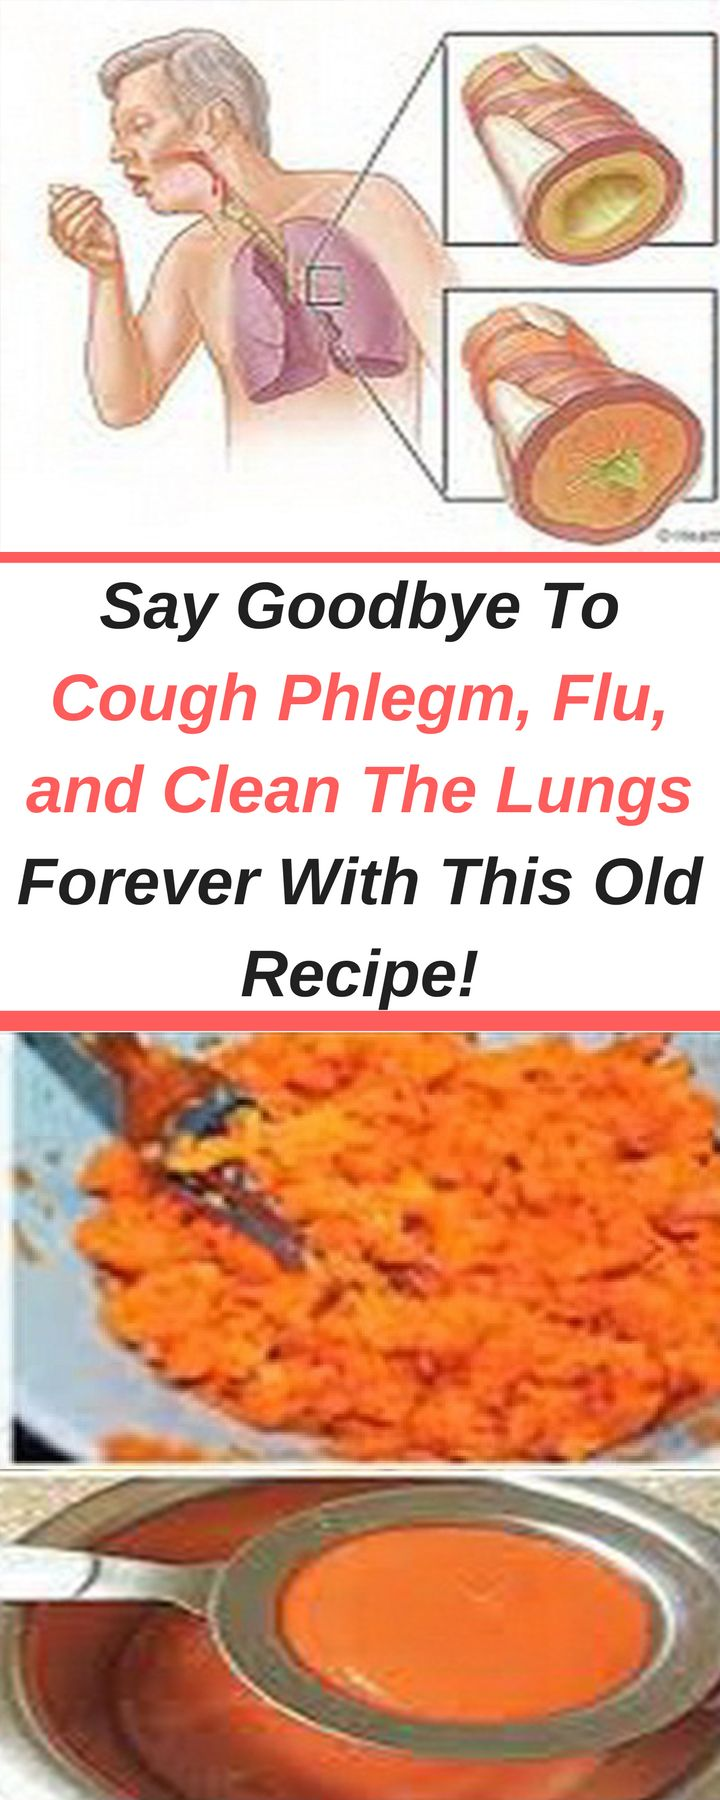 This recipe is extremely effective in treating excessive mucus and coughing. It contains only natural ingredients and has no side effects. It is perfectly safe for children and adults. You should use fresh carrots to make the juice in order to preserve the beneficial nutrients.  What Makes Carrots